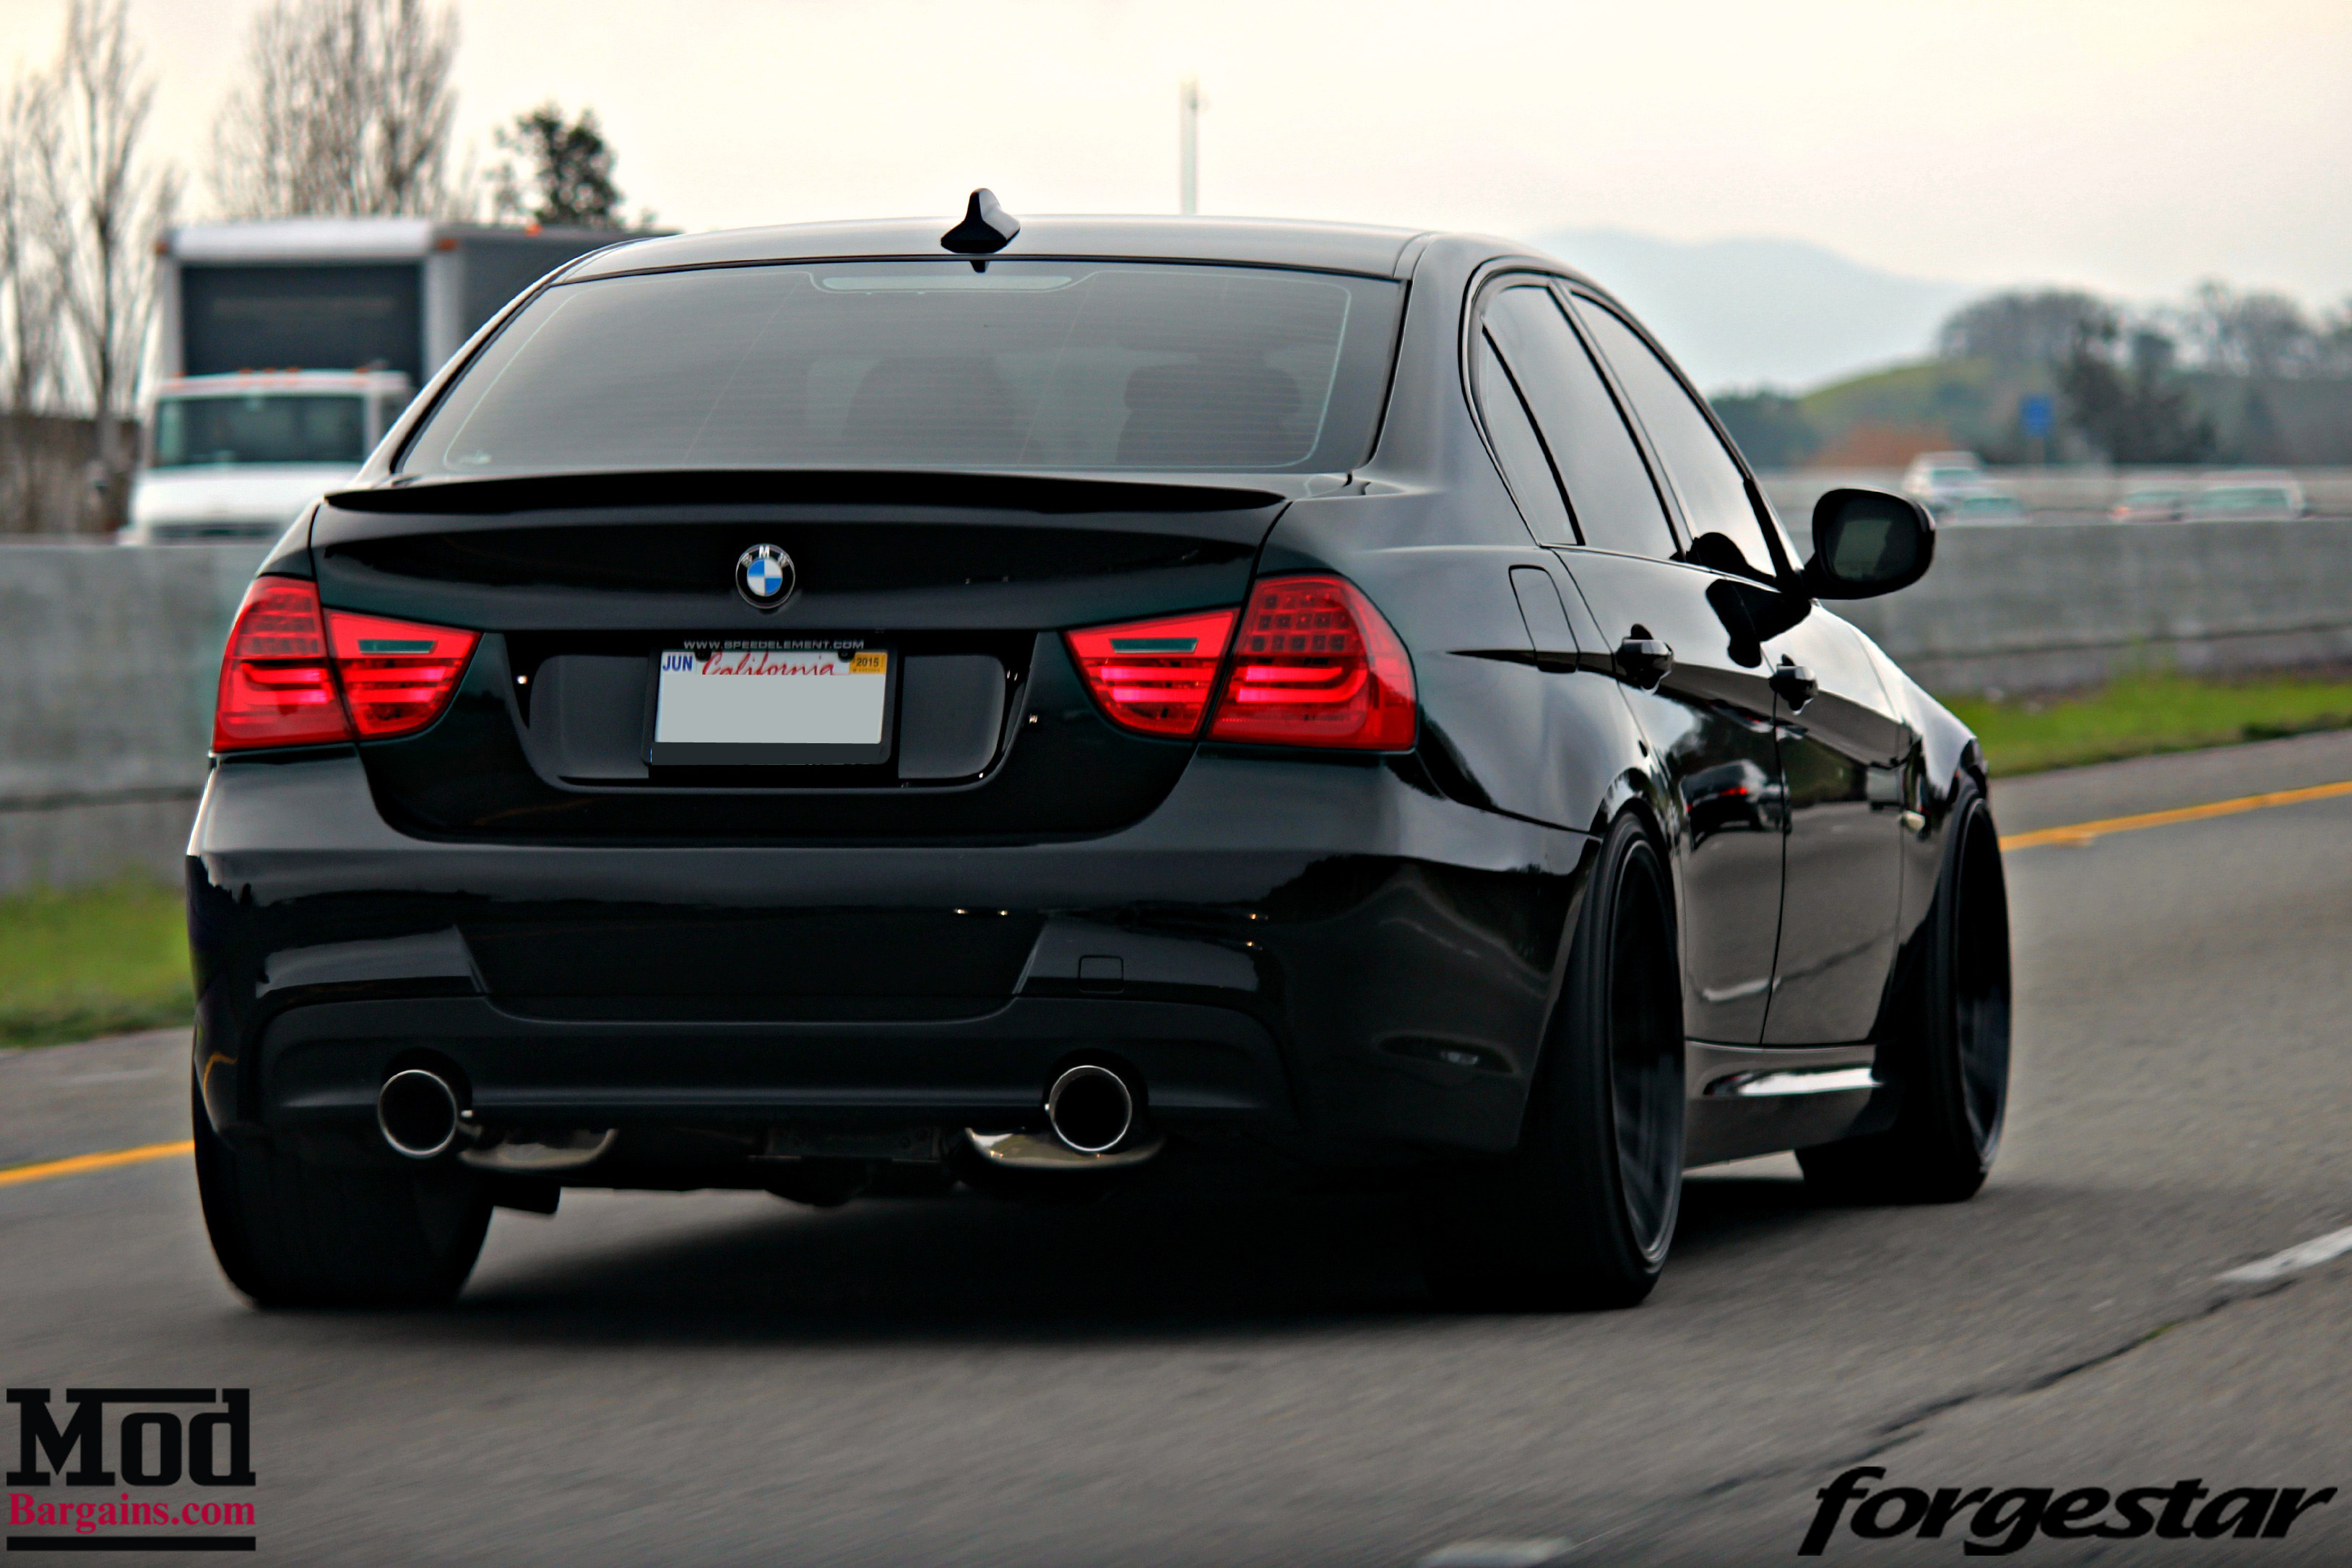 Cole Durden S E90 335i Brings The Fight On Forgestar F14